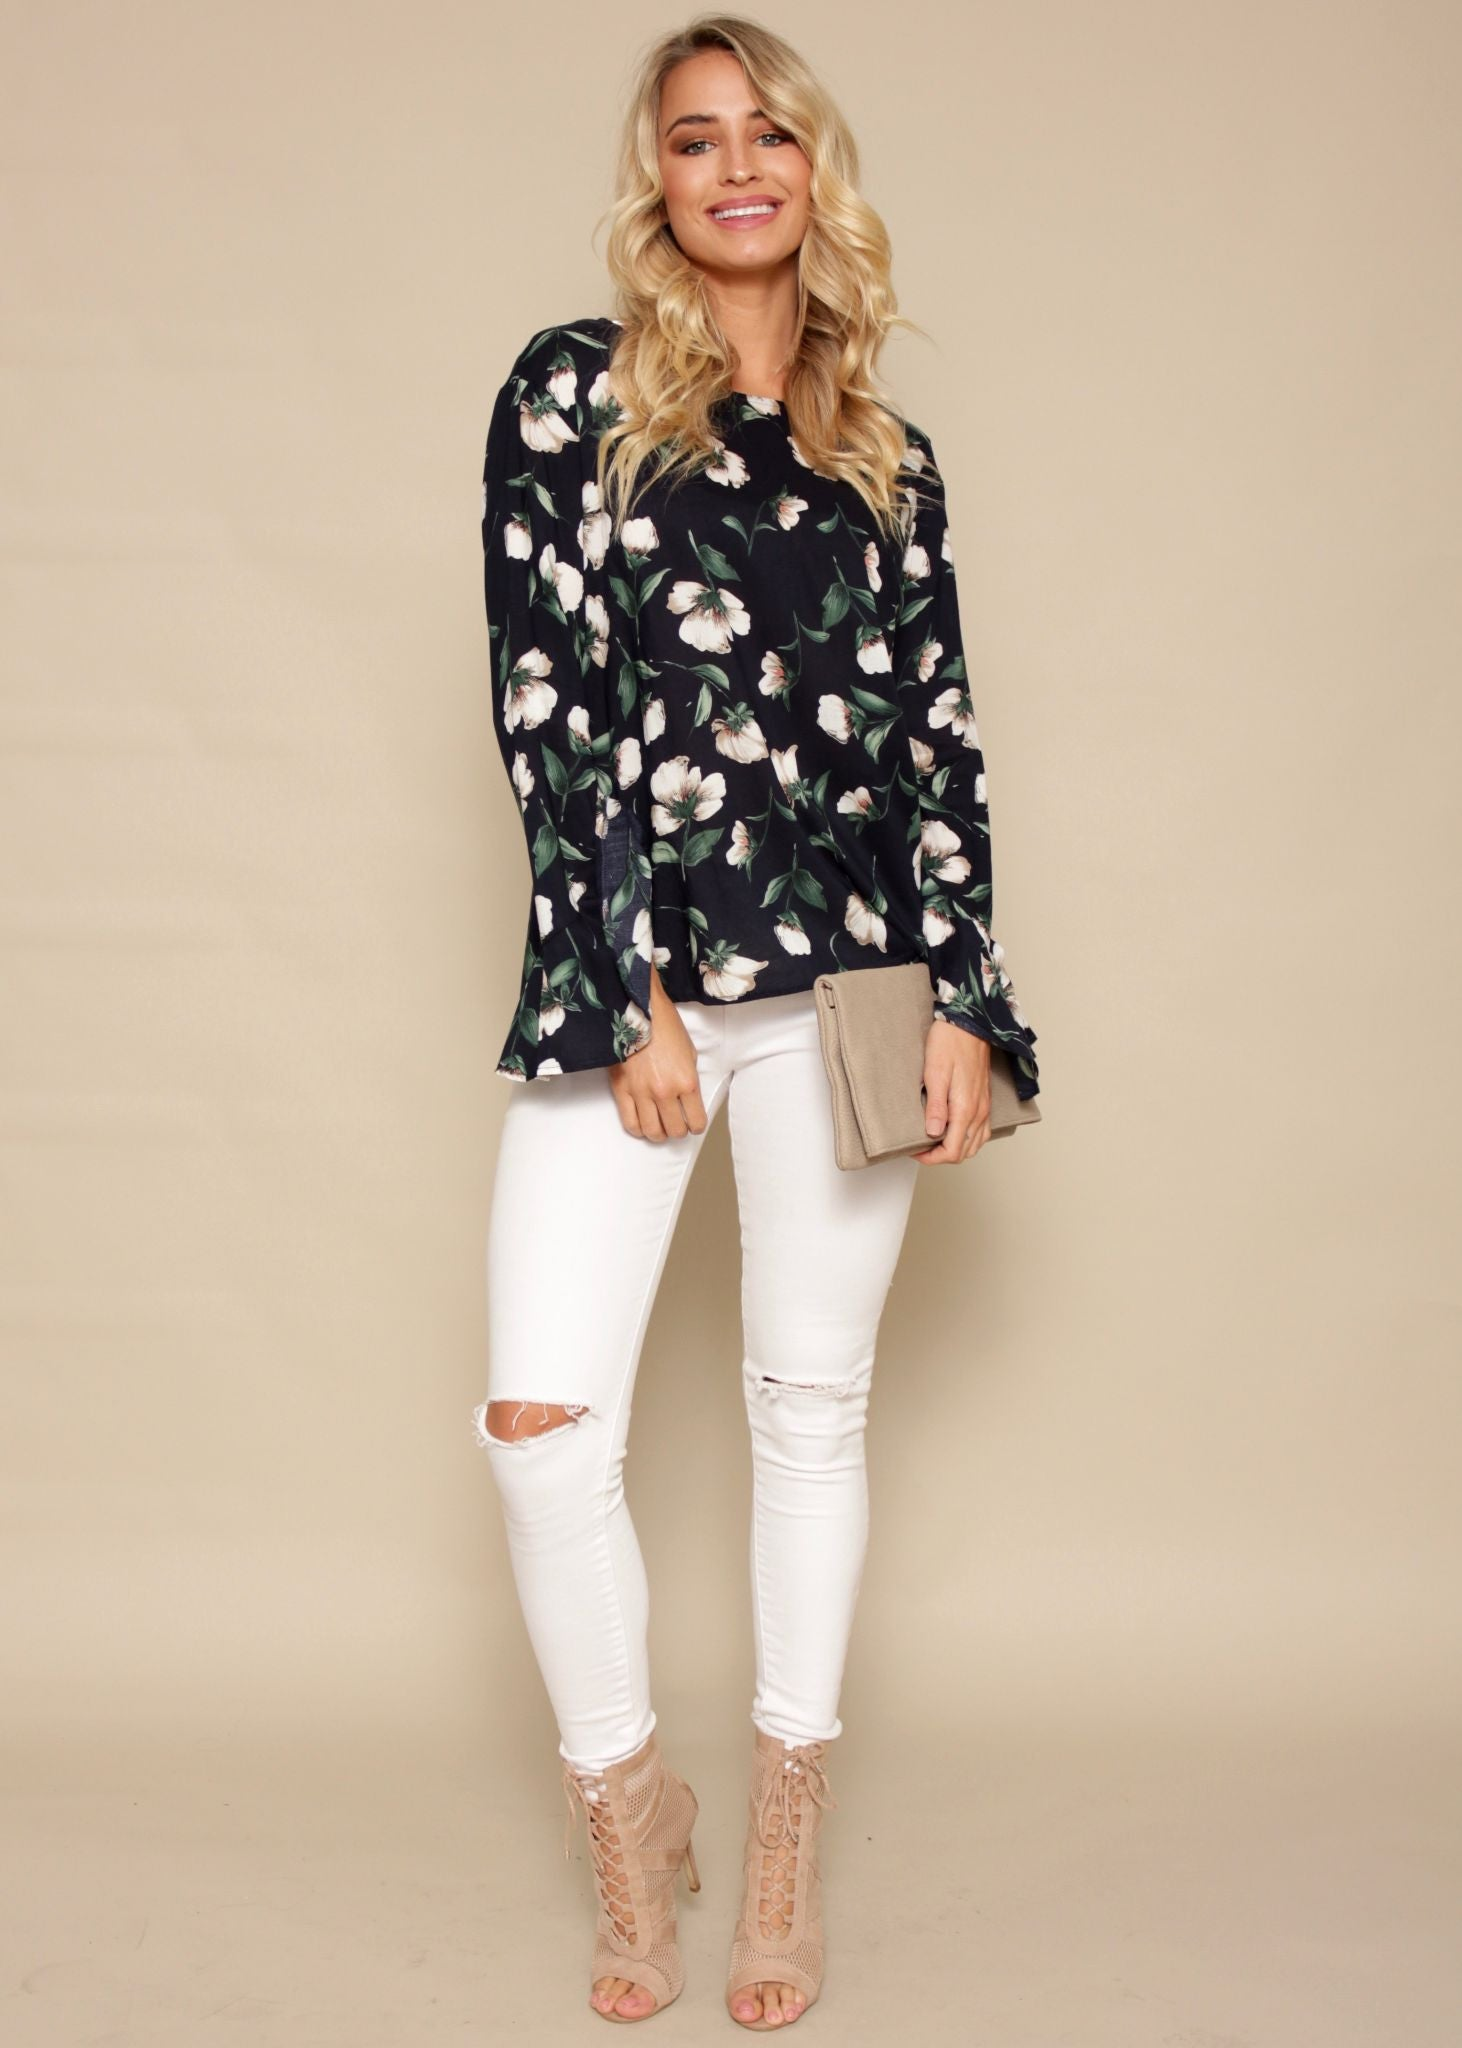 Time Turner Blouse - Navy Floral